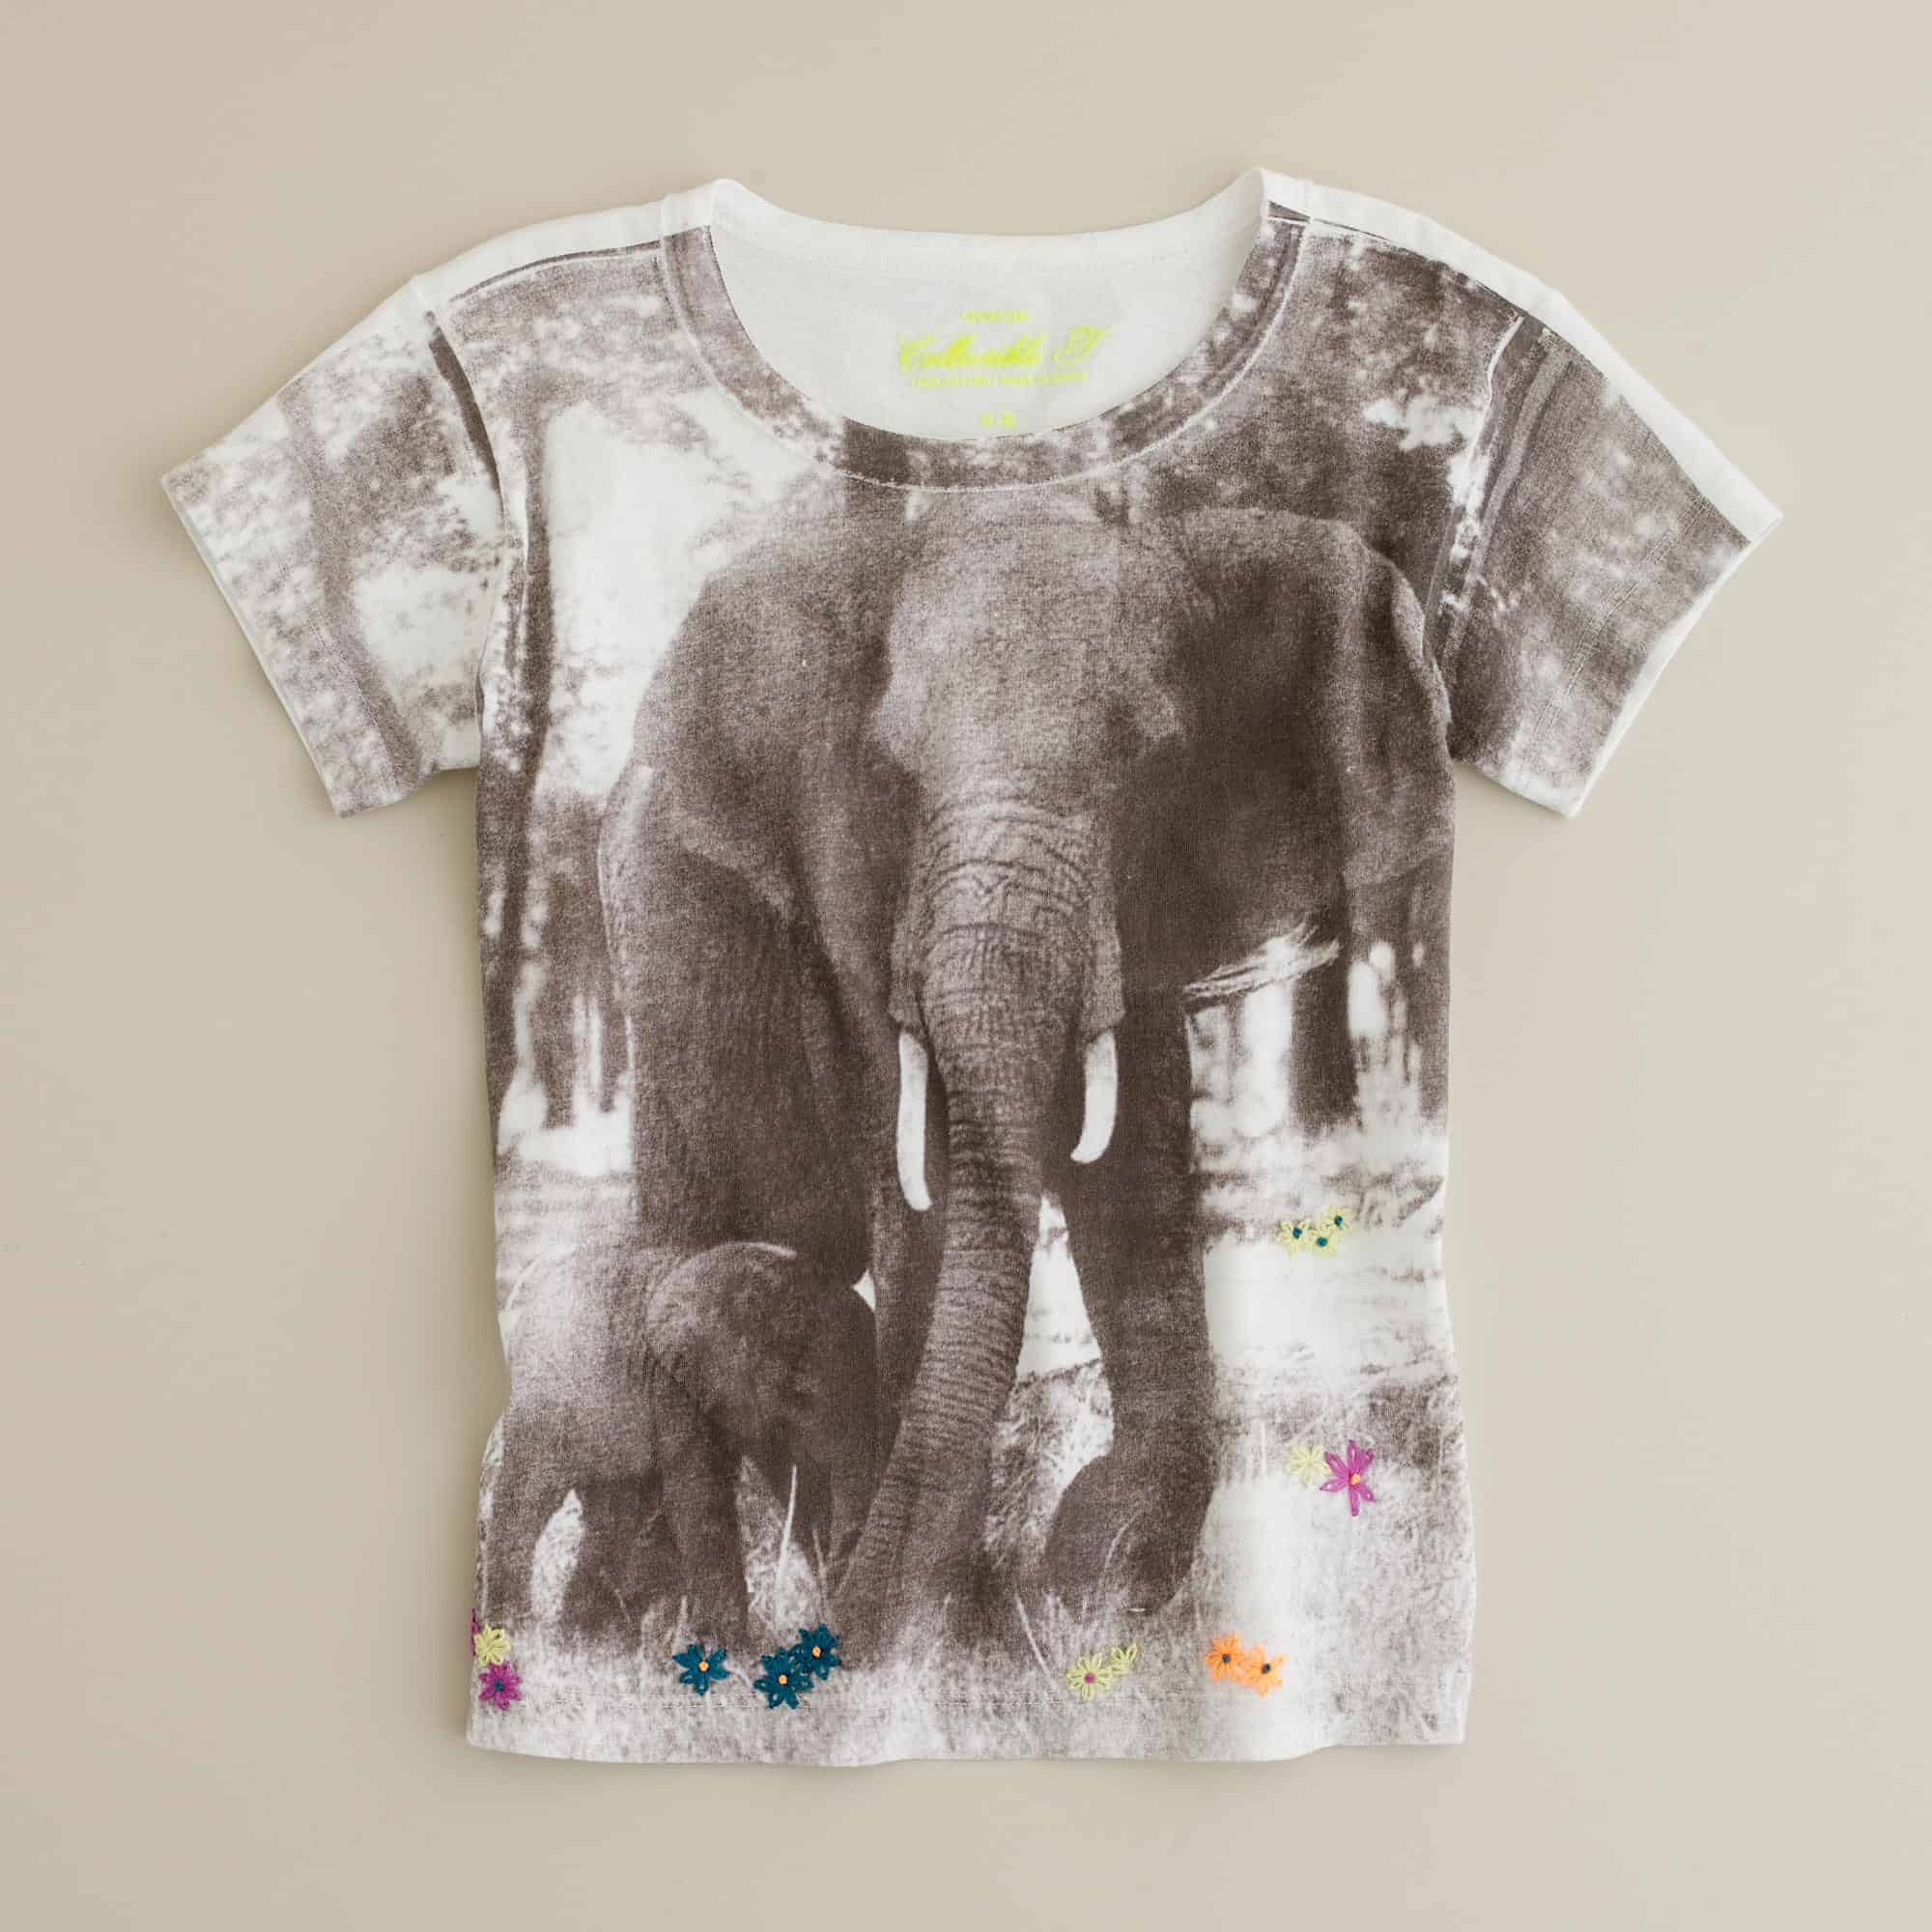 J.Crew Elephant Apparel – brand help animals